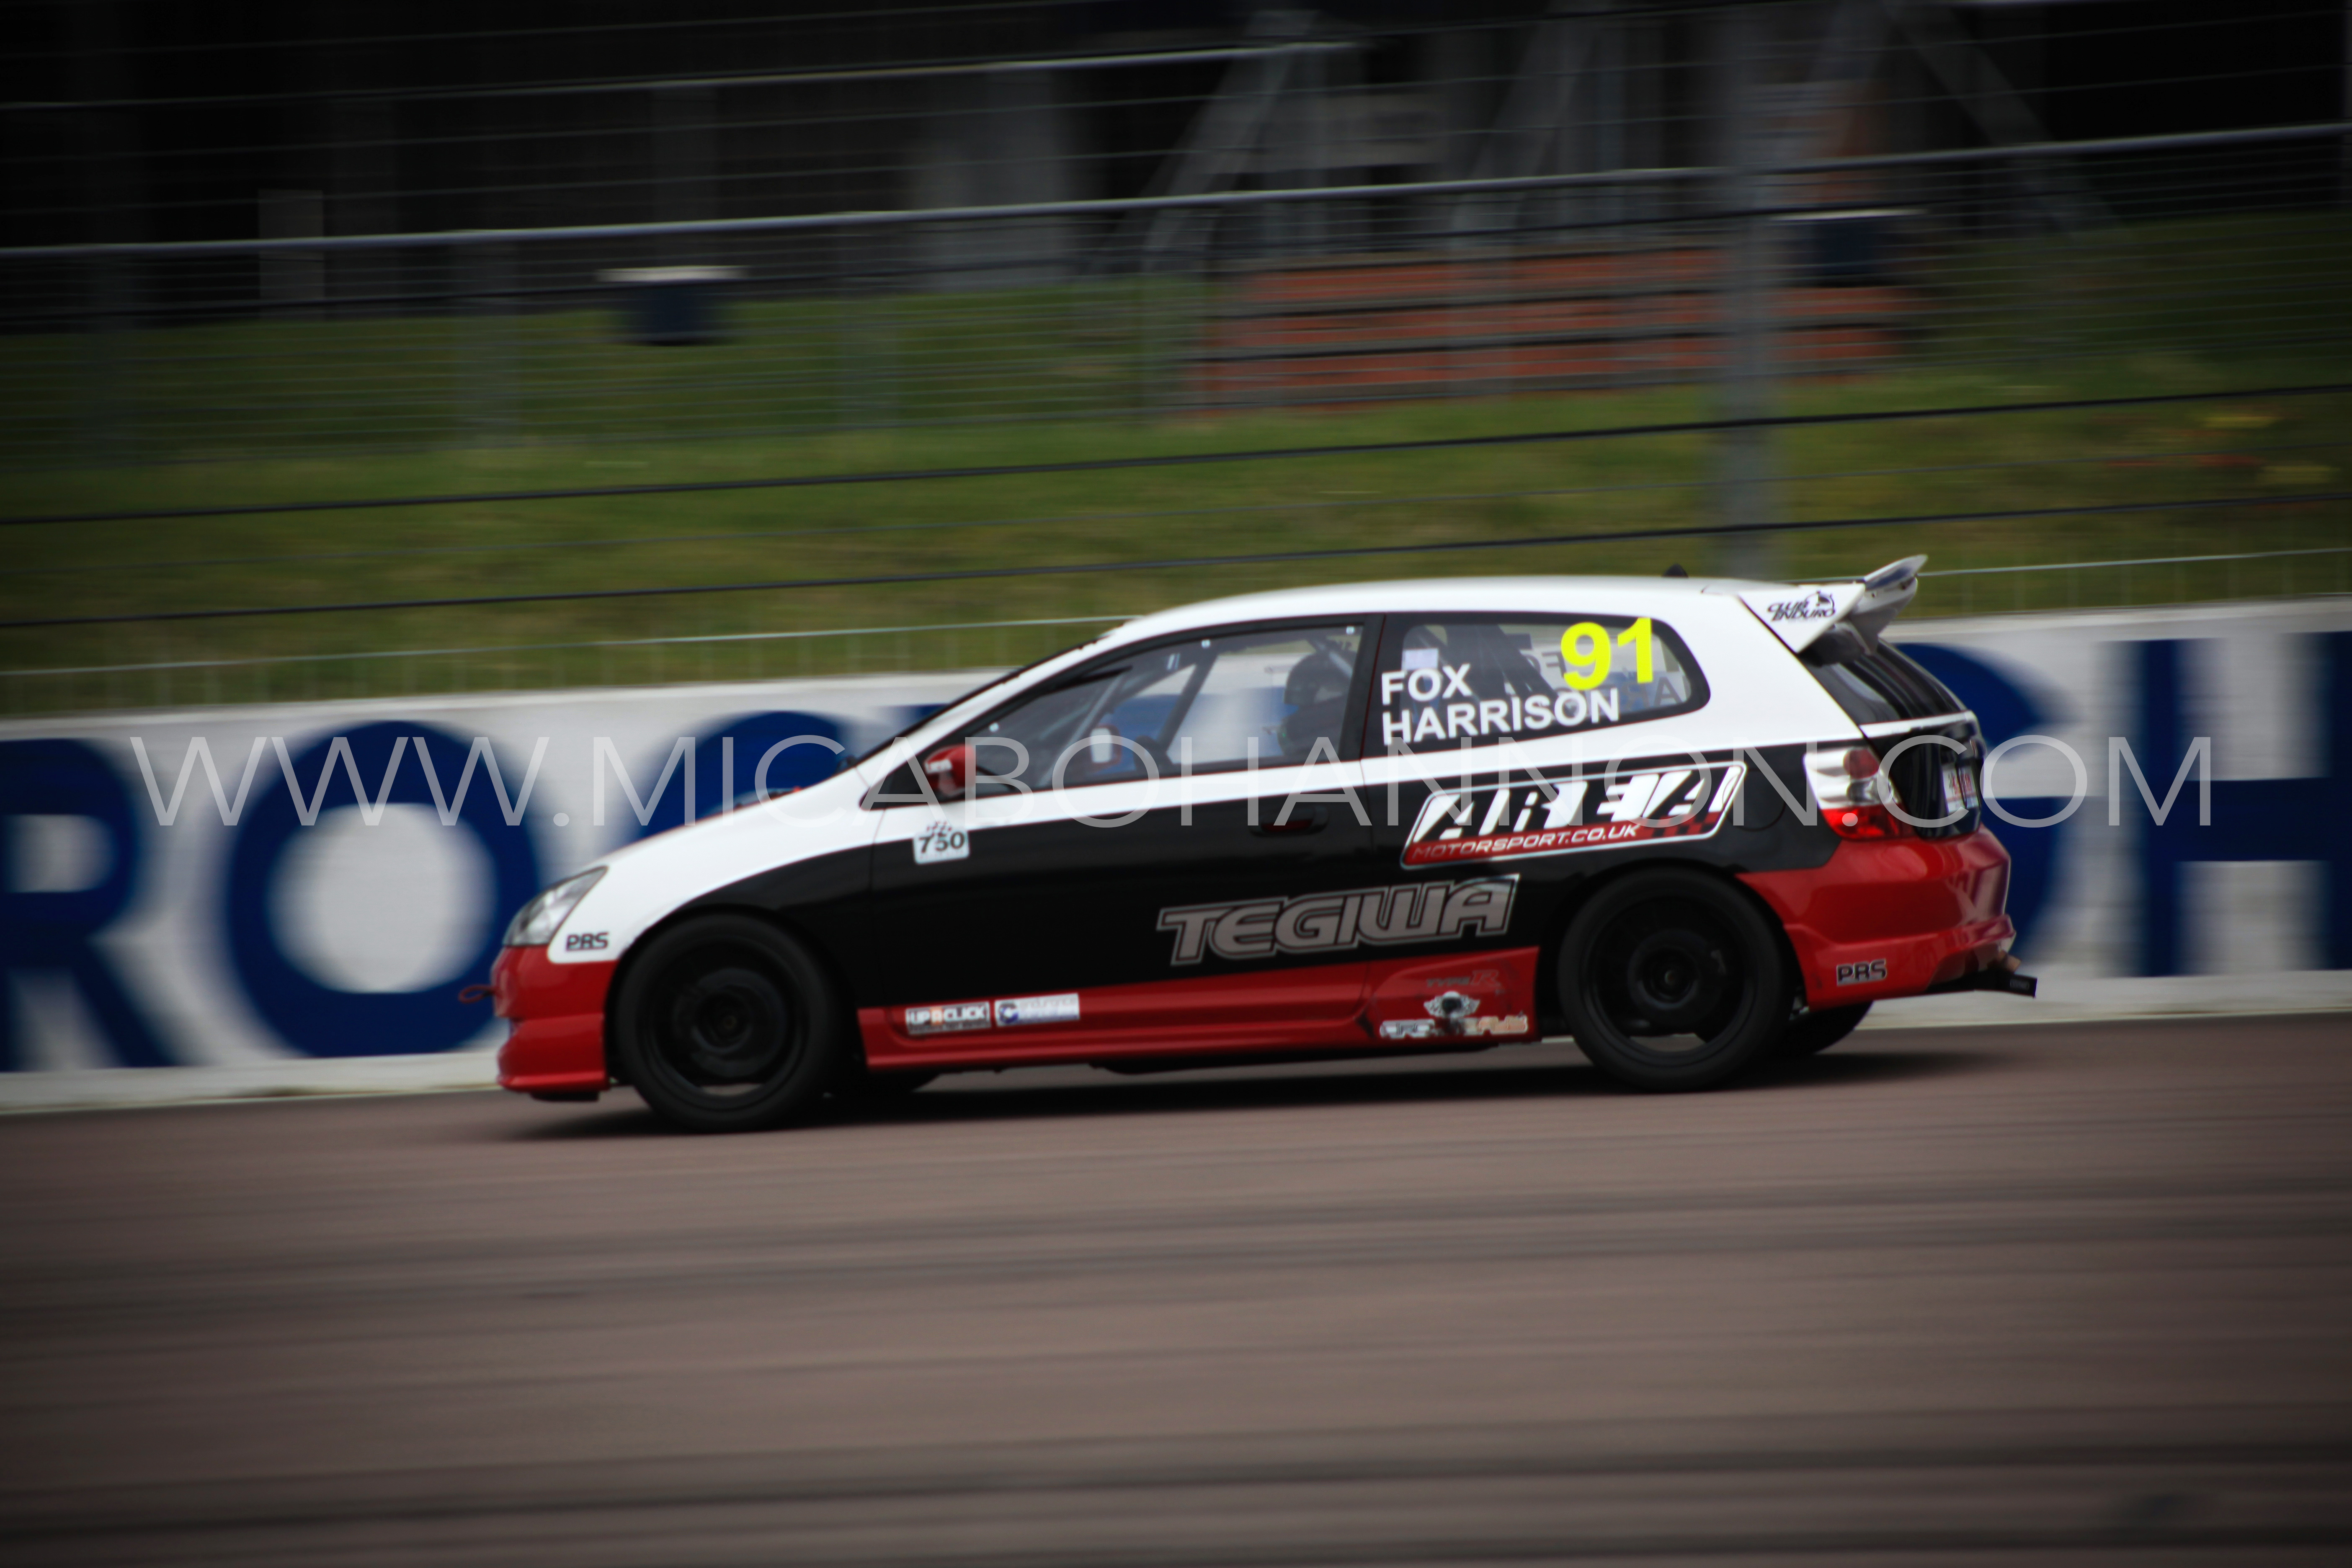 car racing with motion blur